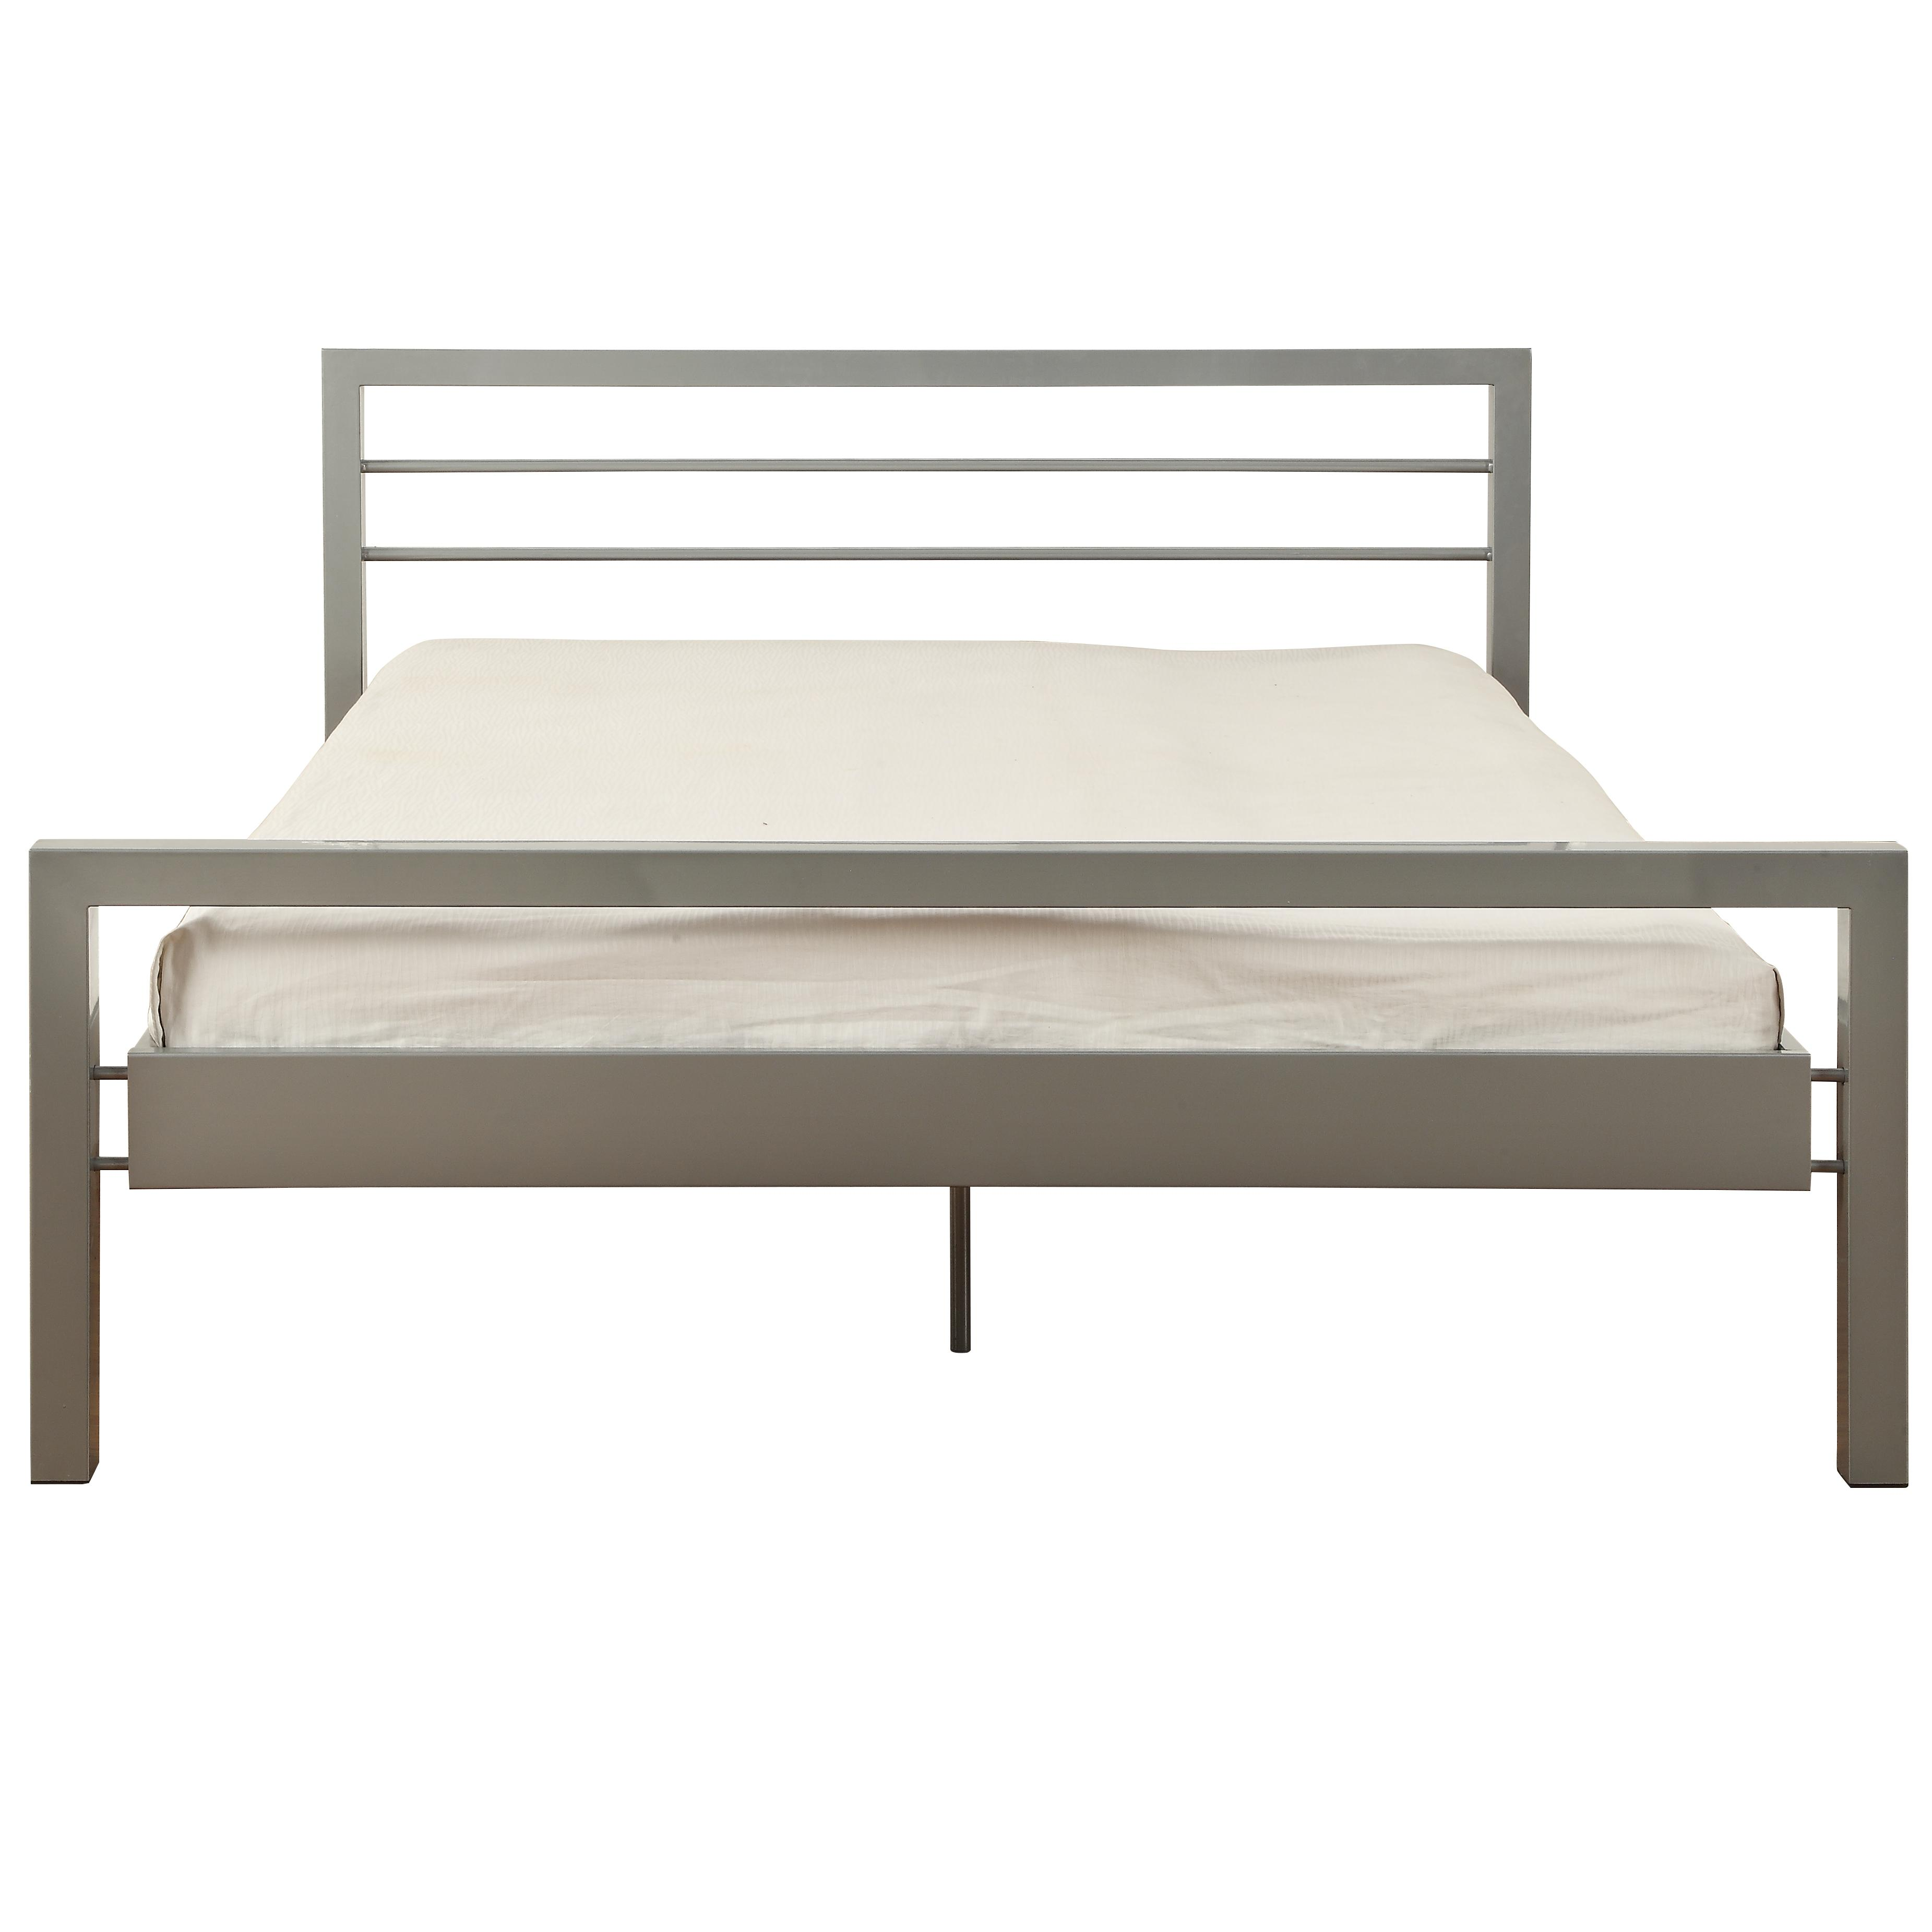 Metallbett silber 90x200  Atlantic Home Collection Elison Metallbett, silber, Double ...